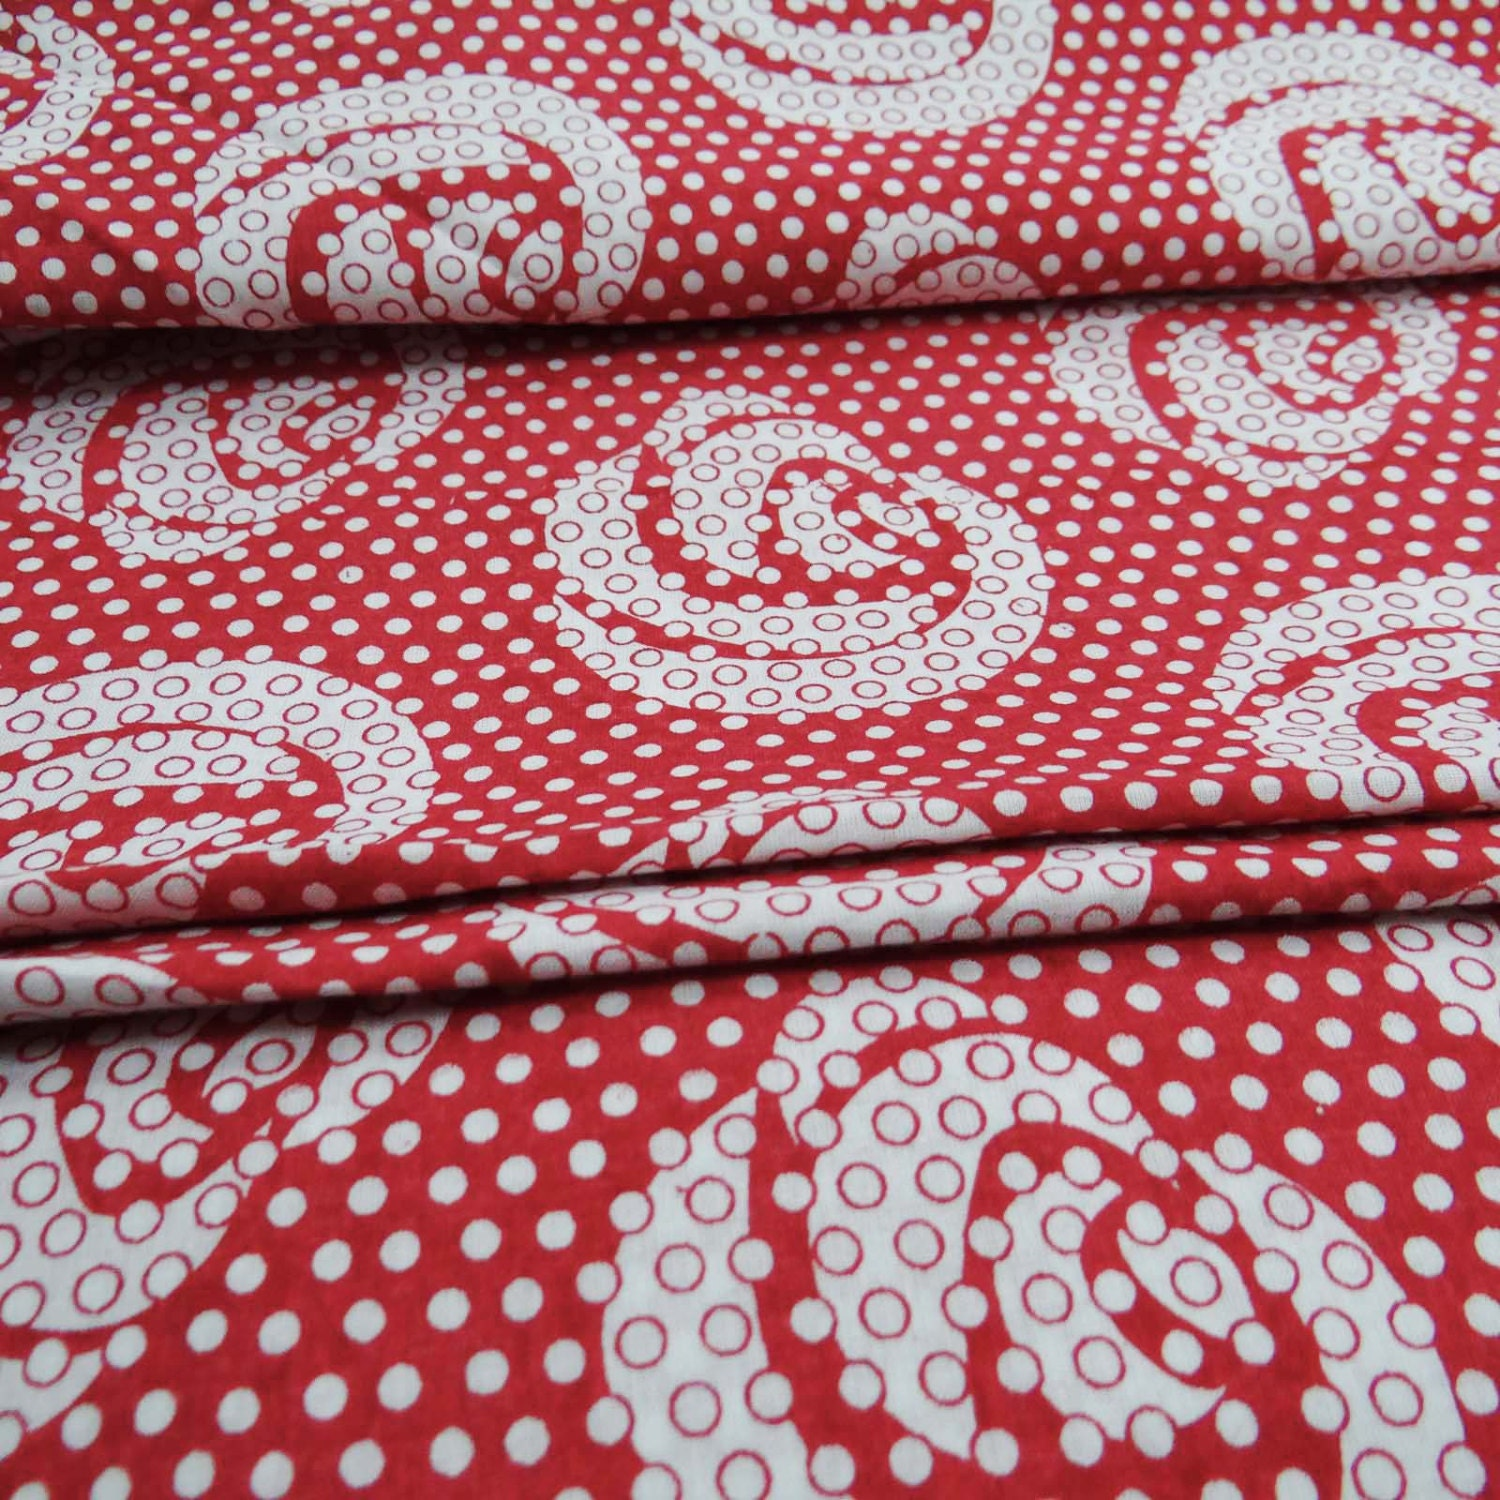 Dress making designer abstract printed with red color for Cotton sewing material